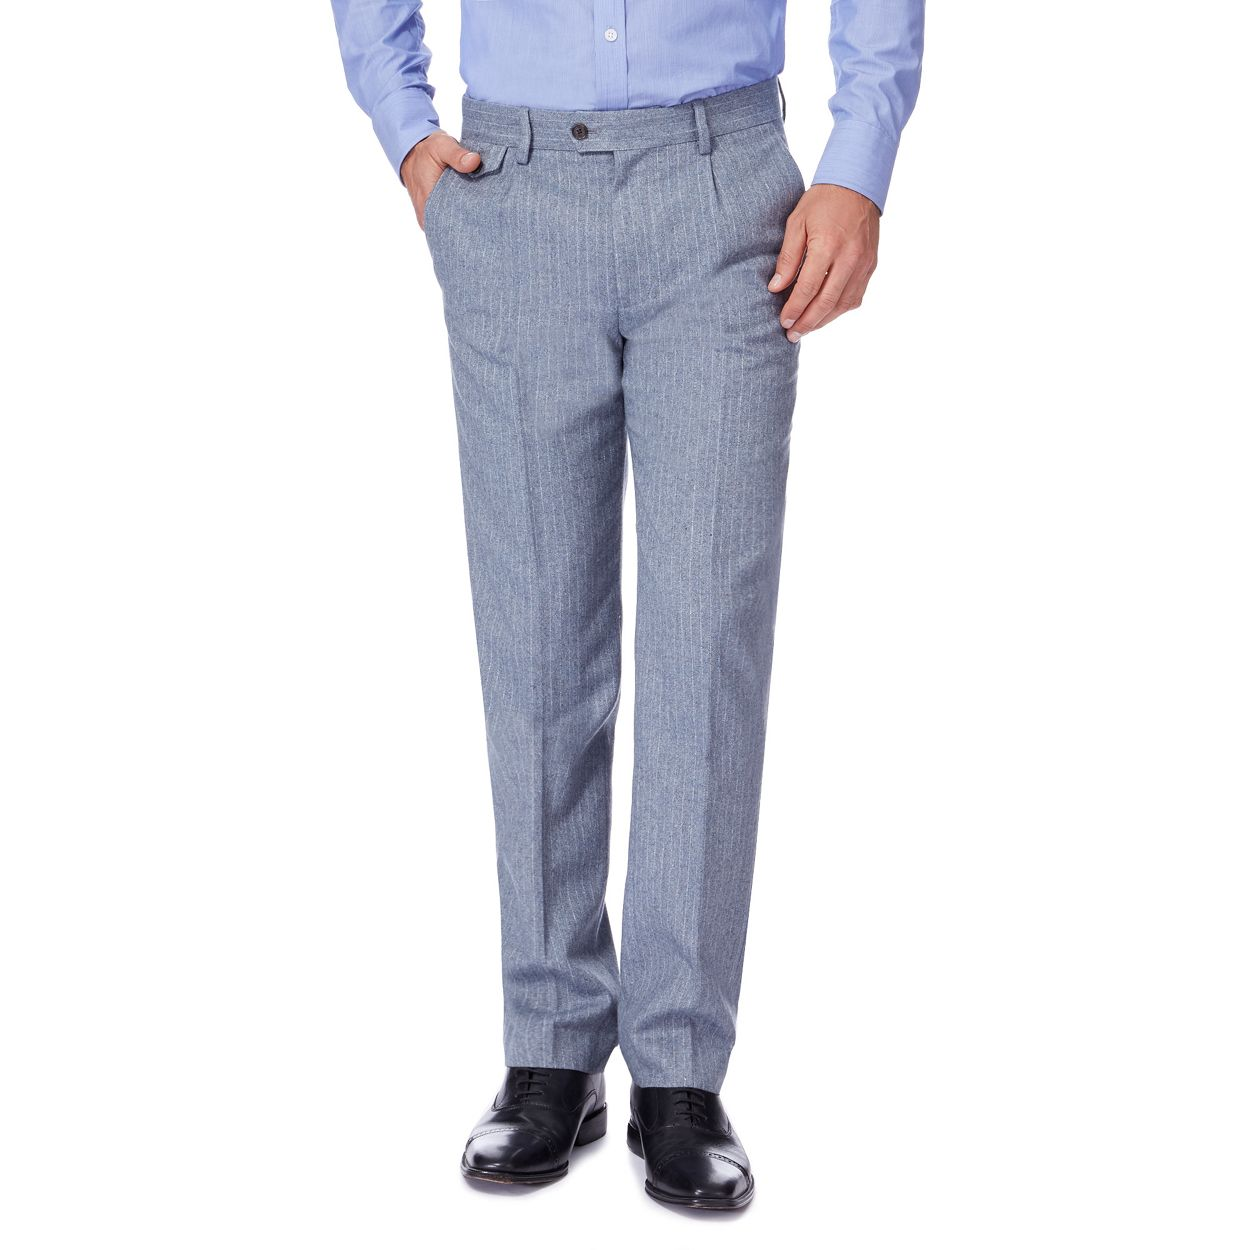 Hammond & Co. by Patrick Grant Light Blue Light blue wool blend pinstripe trousers